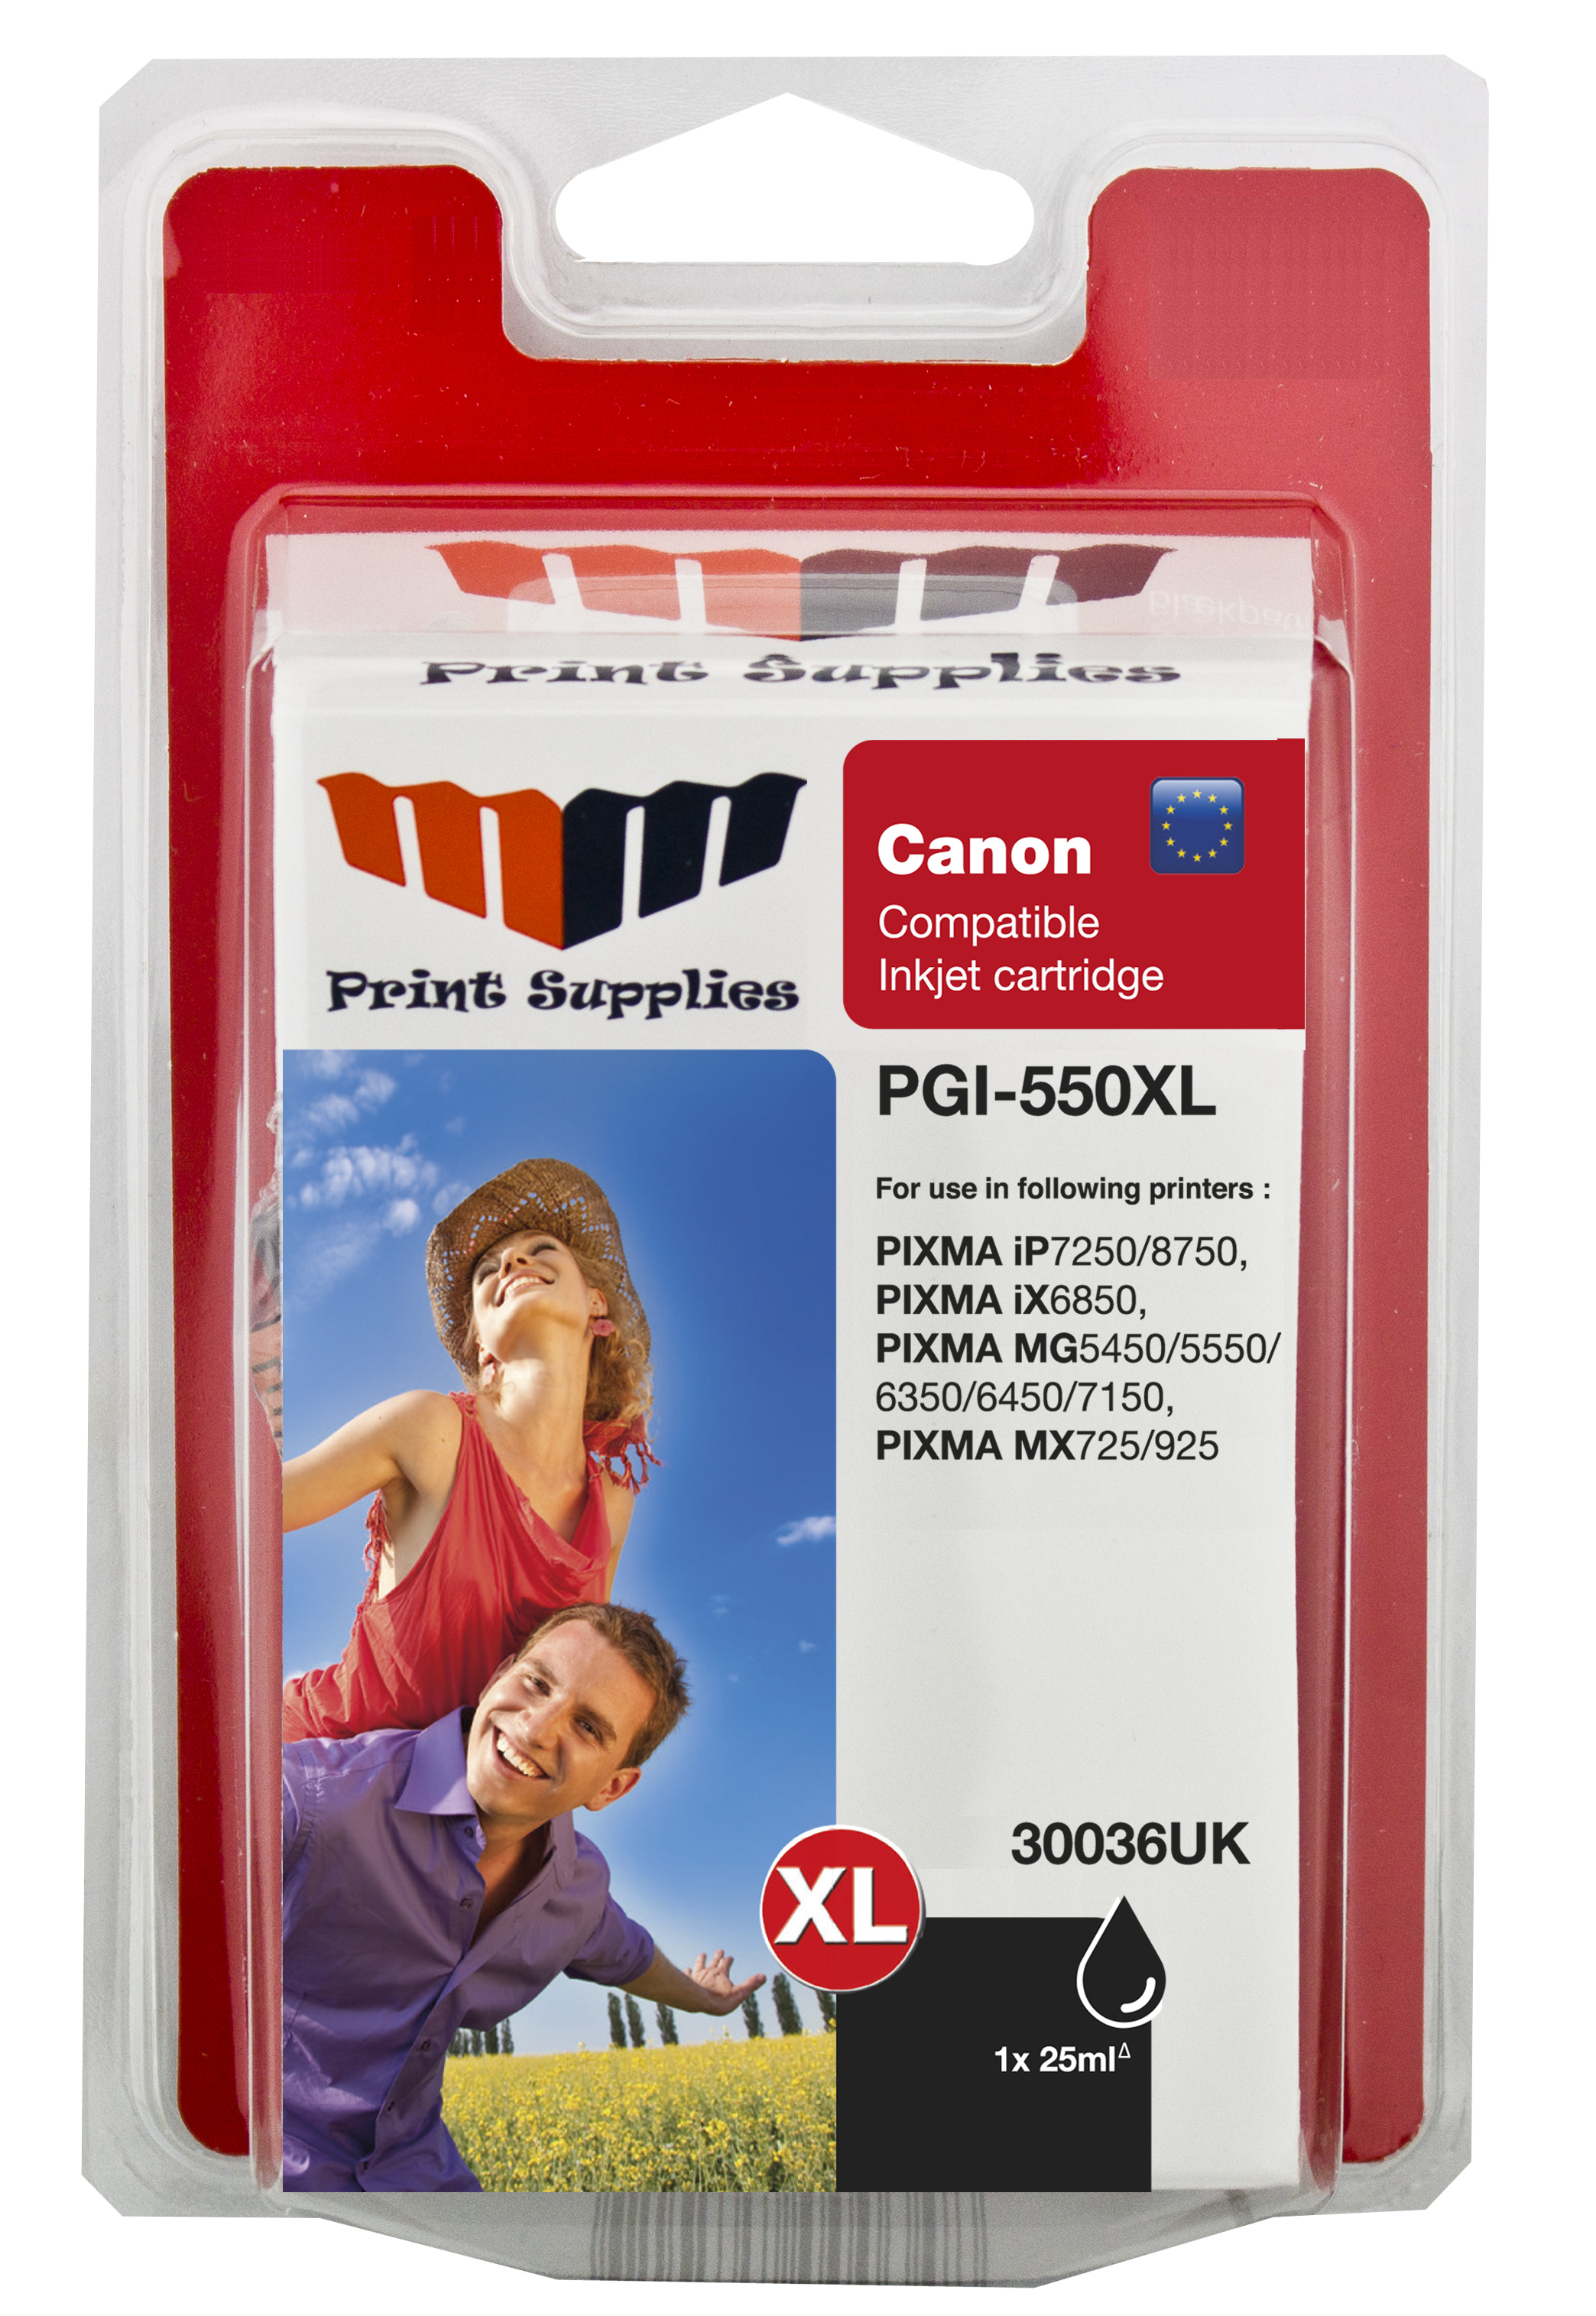 Black Inkjet Cartridge (PGI-550BKXL)